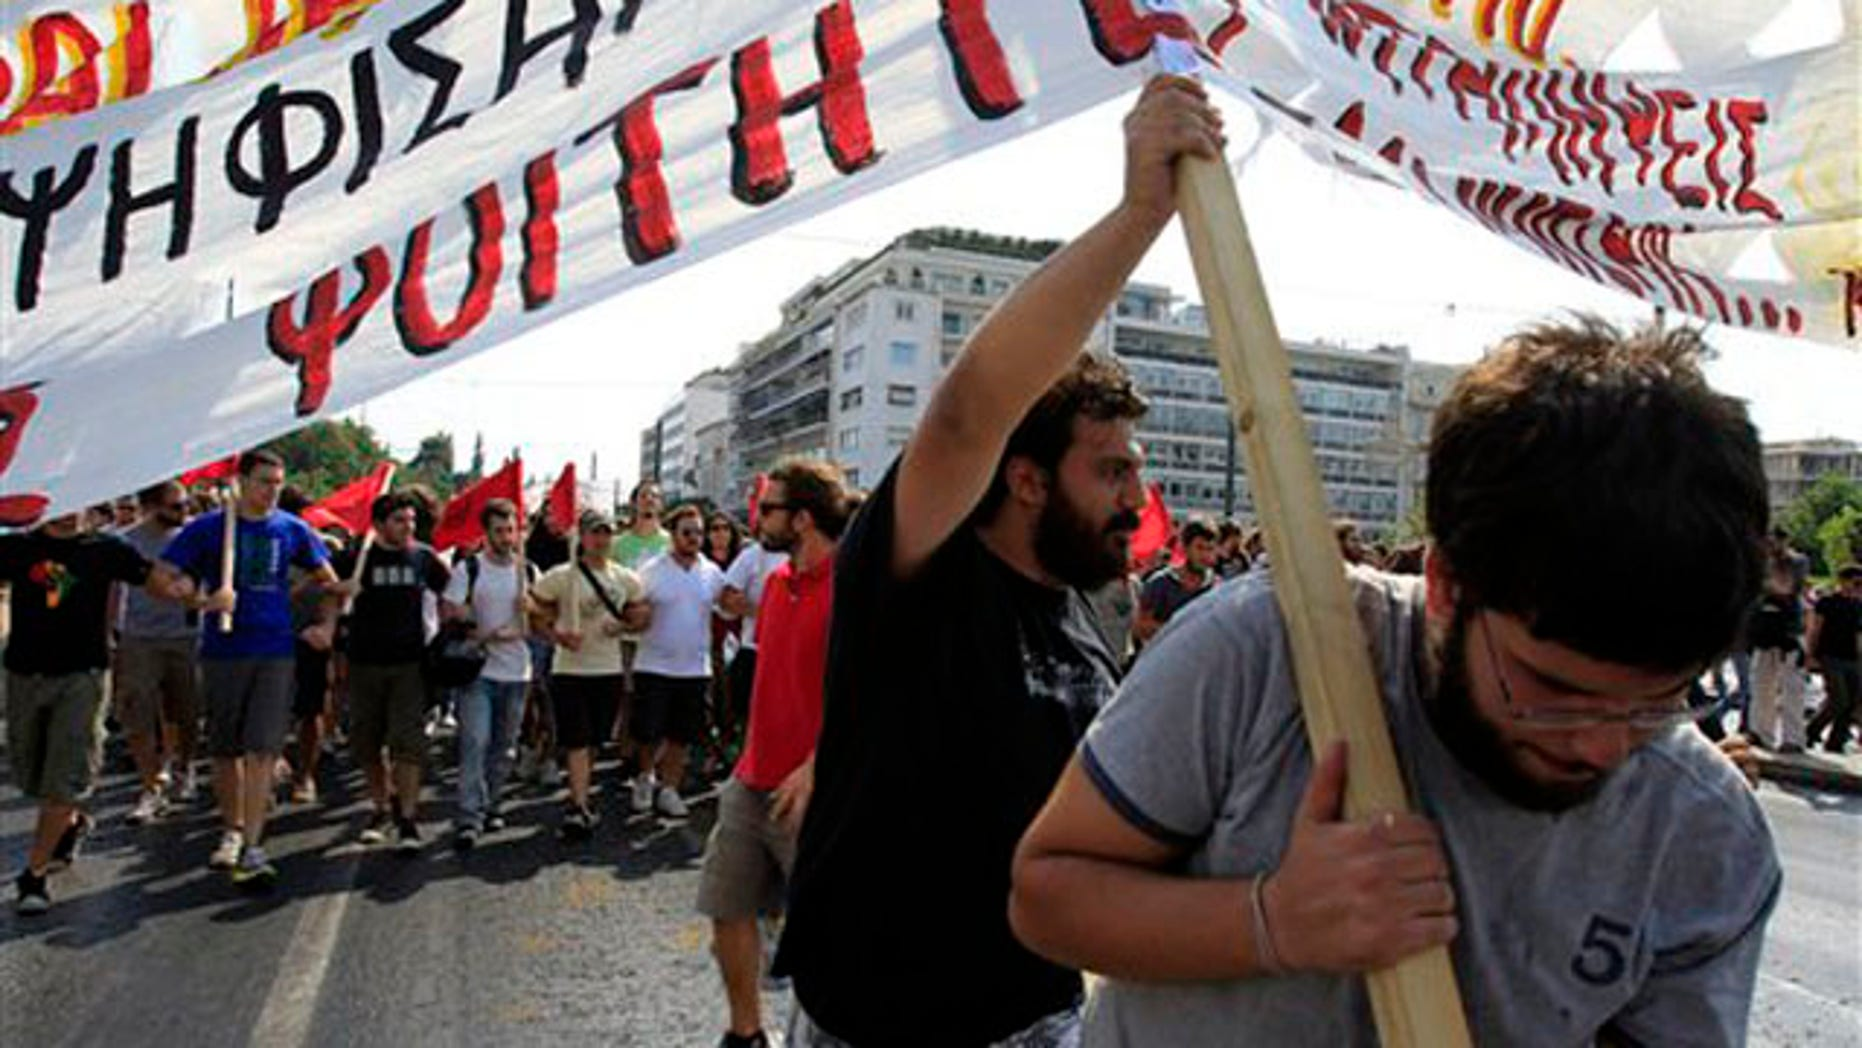 University students try to hold a banner during a protest in Athens, Thursday, Sept. 8, 2011.